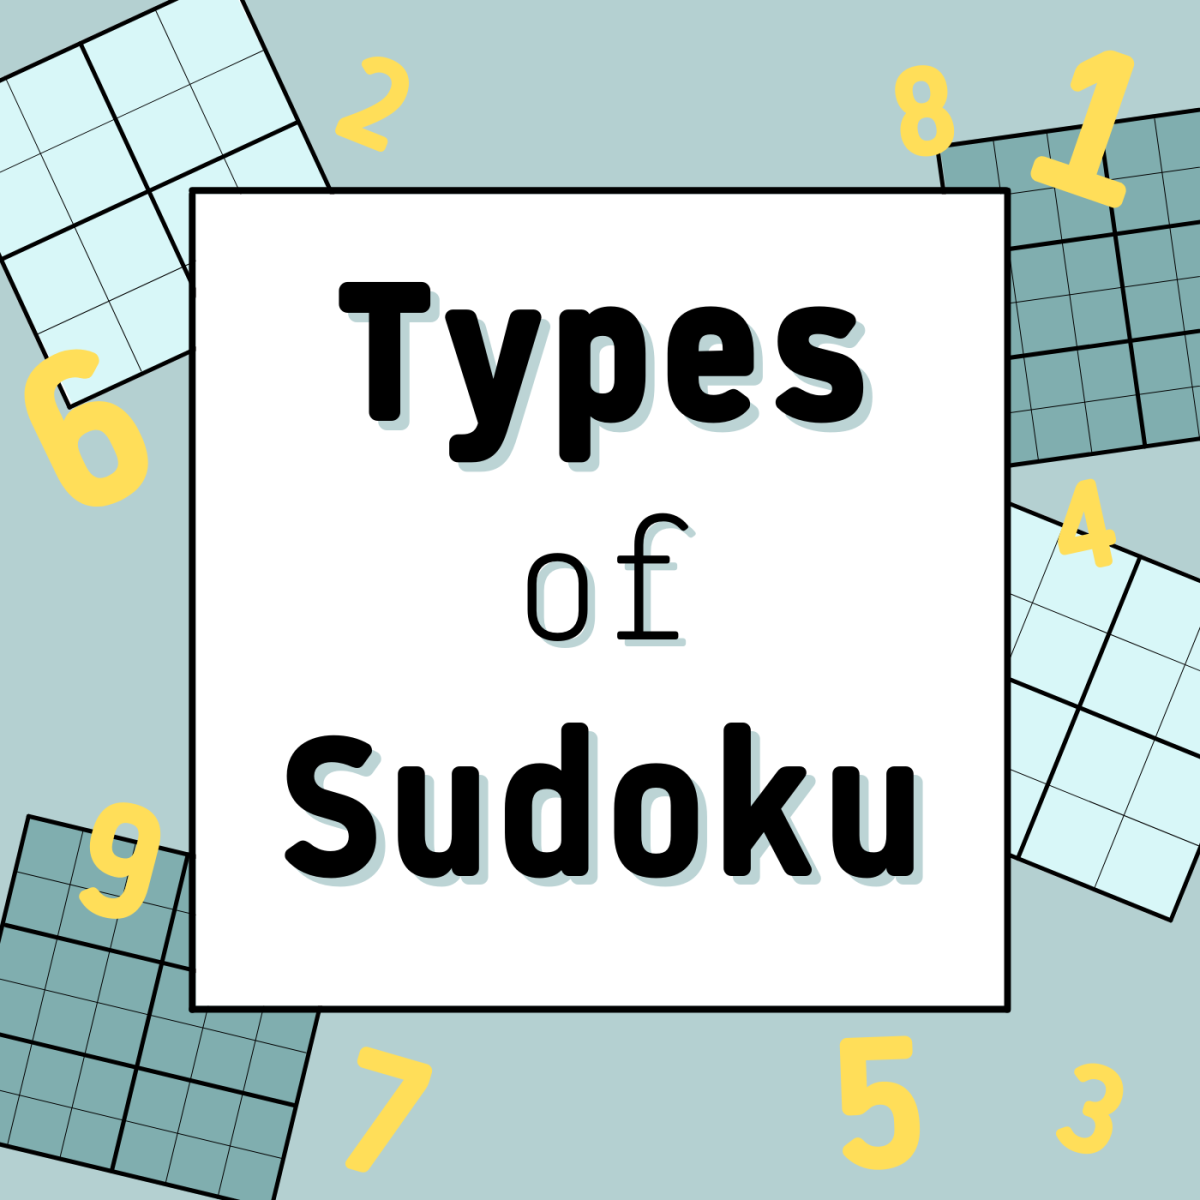 Are you tired of regular old 9x9-grid sudoku? Try one of these other variants!